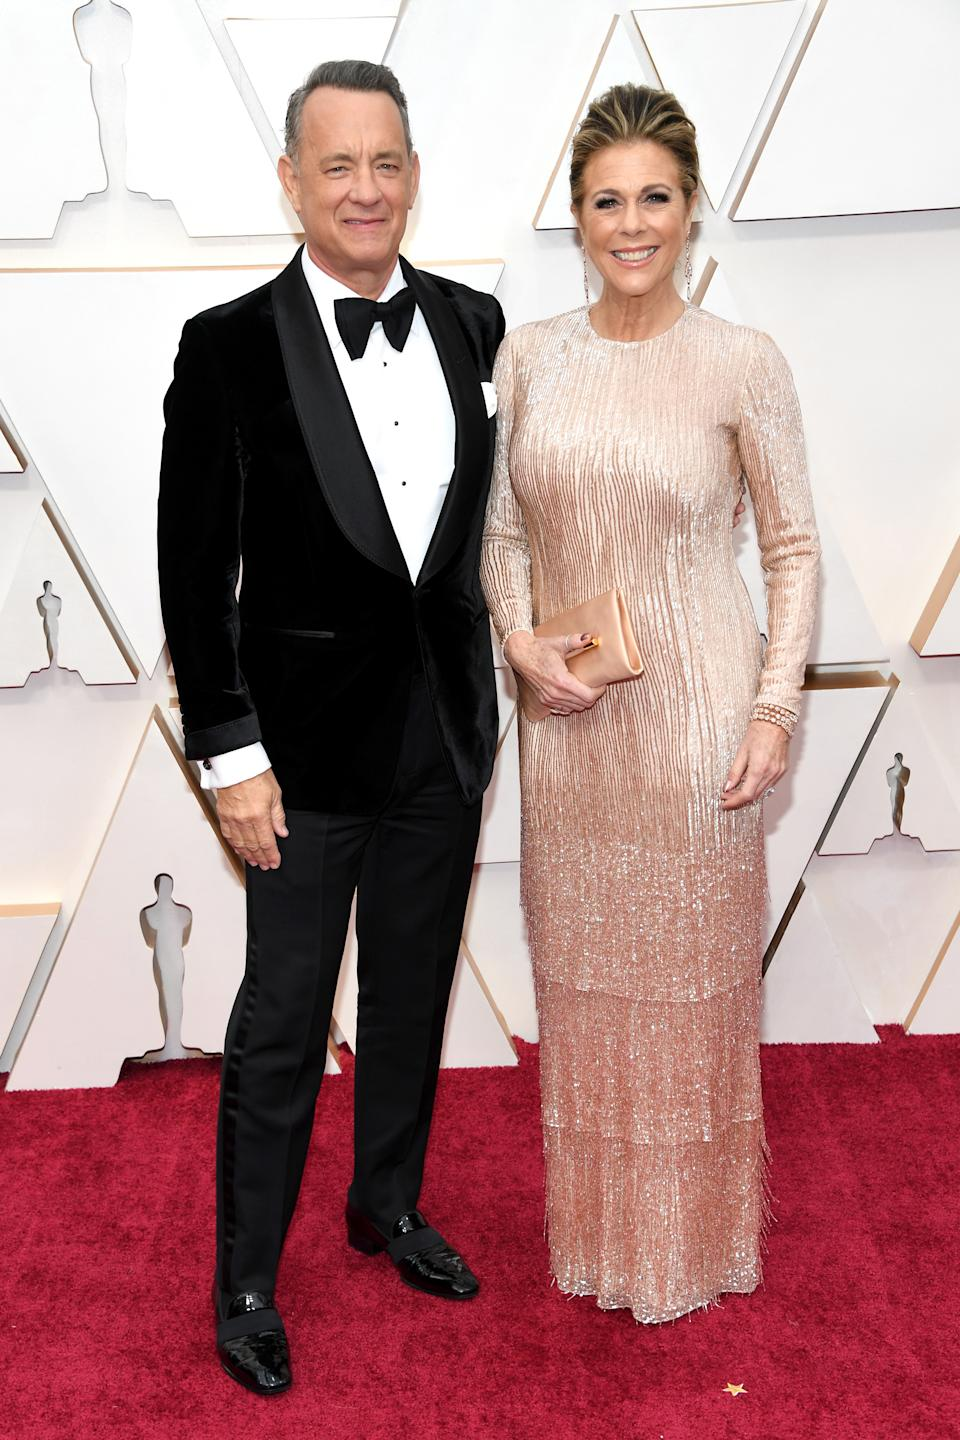 """Hanks and Wilson looked like red carpet royalty as they arrived at this year's Oscars. Hanks is nominated for Best Supporting Actor for his portrayal of Fred Rogers in """"A Beautiful Day in the Neighborhood."""""""